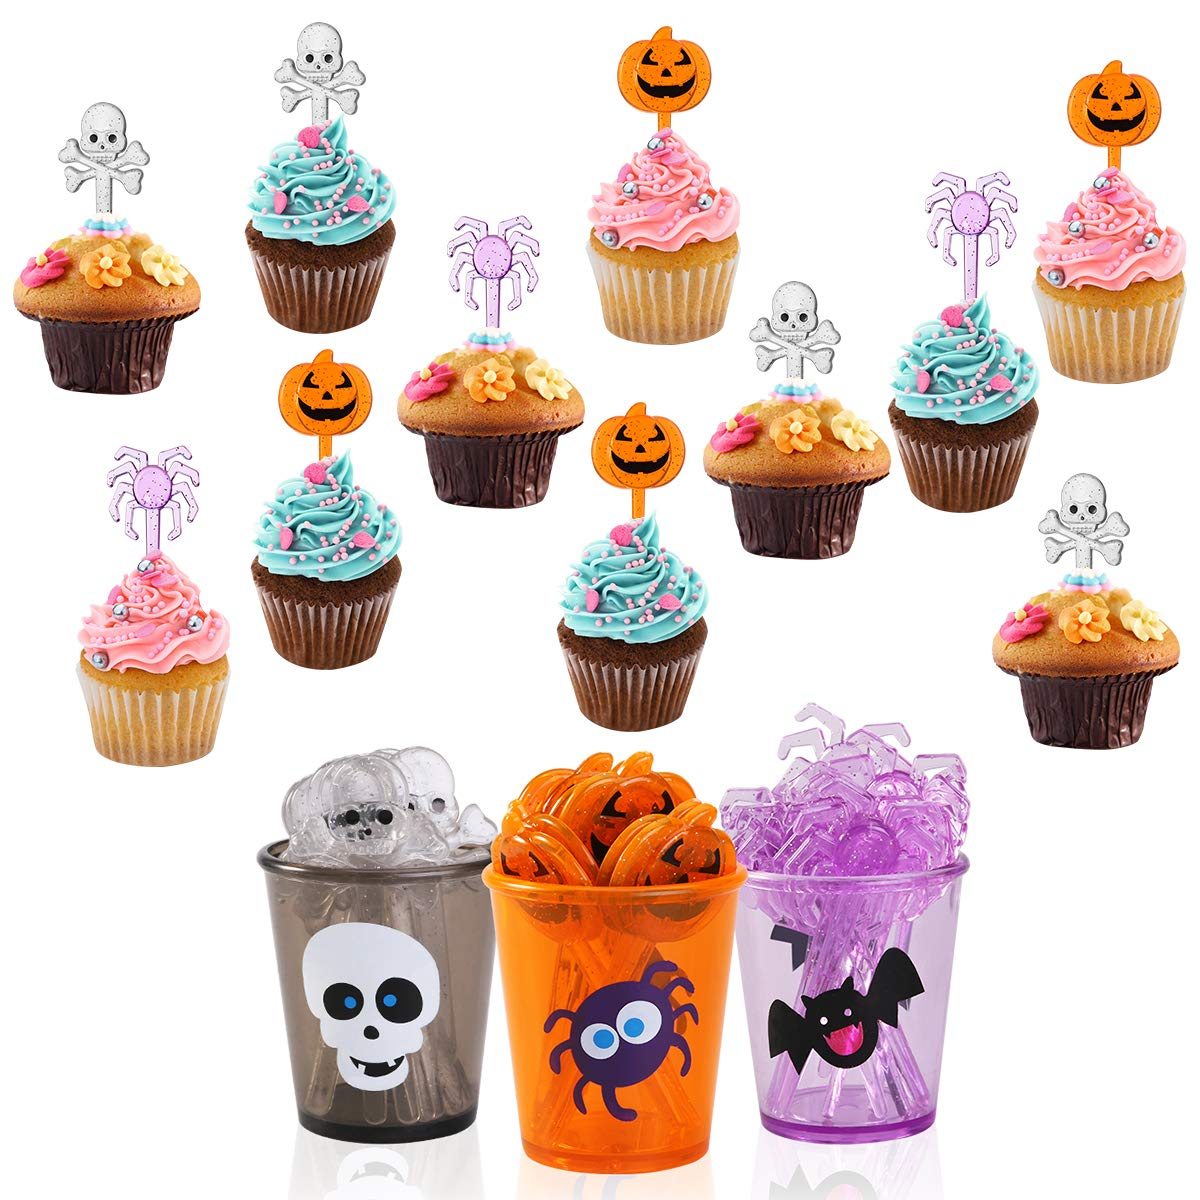 PBPBOX Food Picks Set Cupcake Topper Decorative (72 Picks + 6 Cups) Party Supplies and Decorations